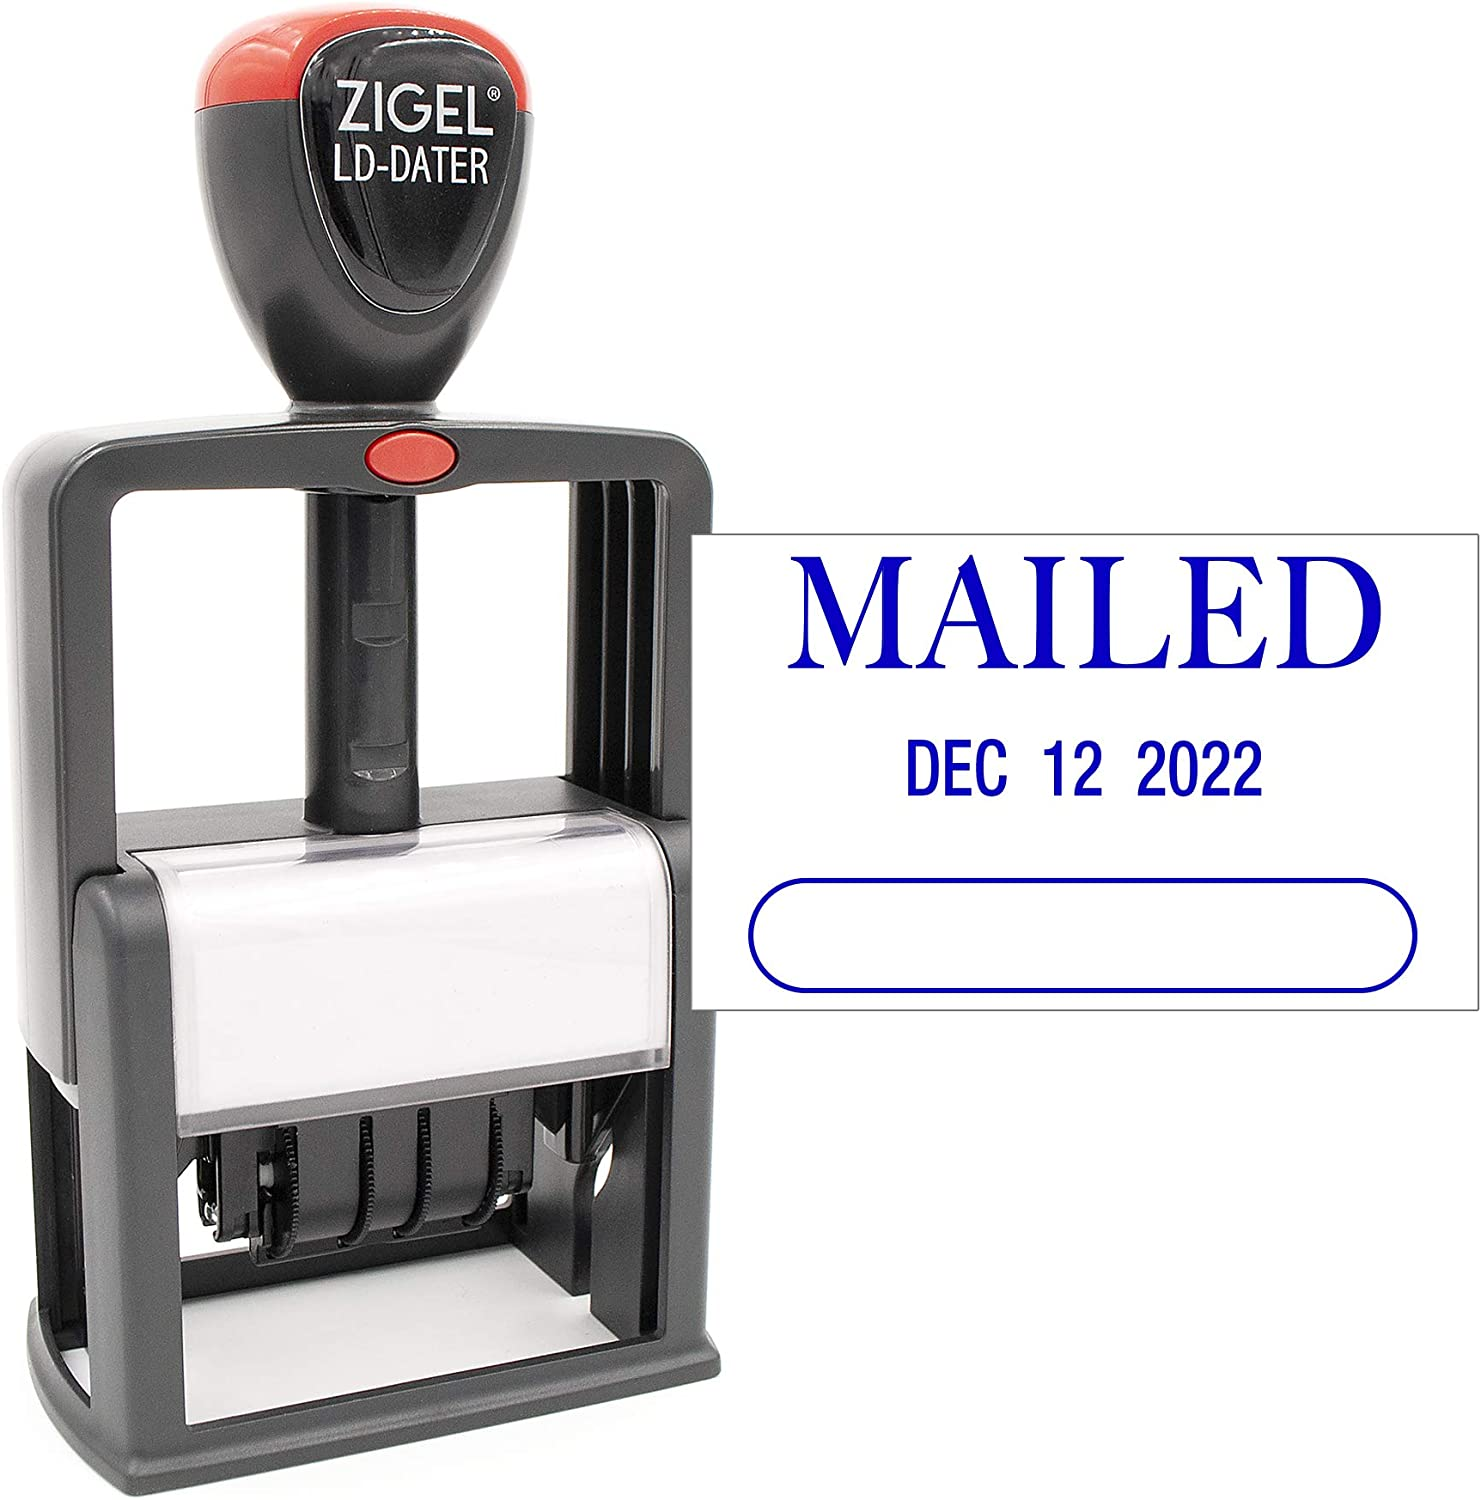 Blue Ink Style A ZIGEL Heavy Duty Style Self Inking Date Stamp with Scanned